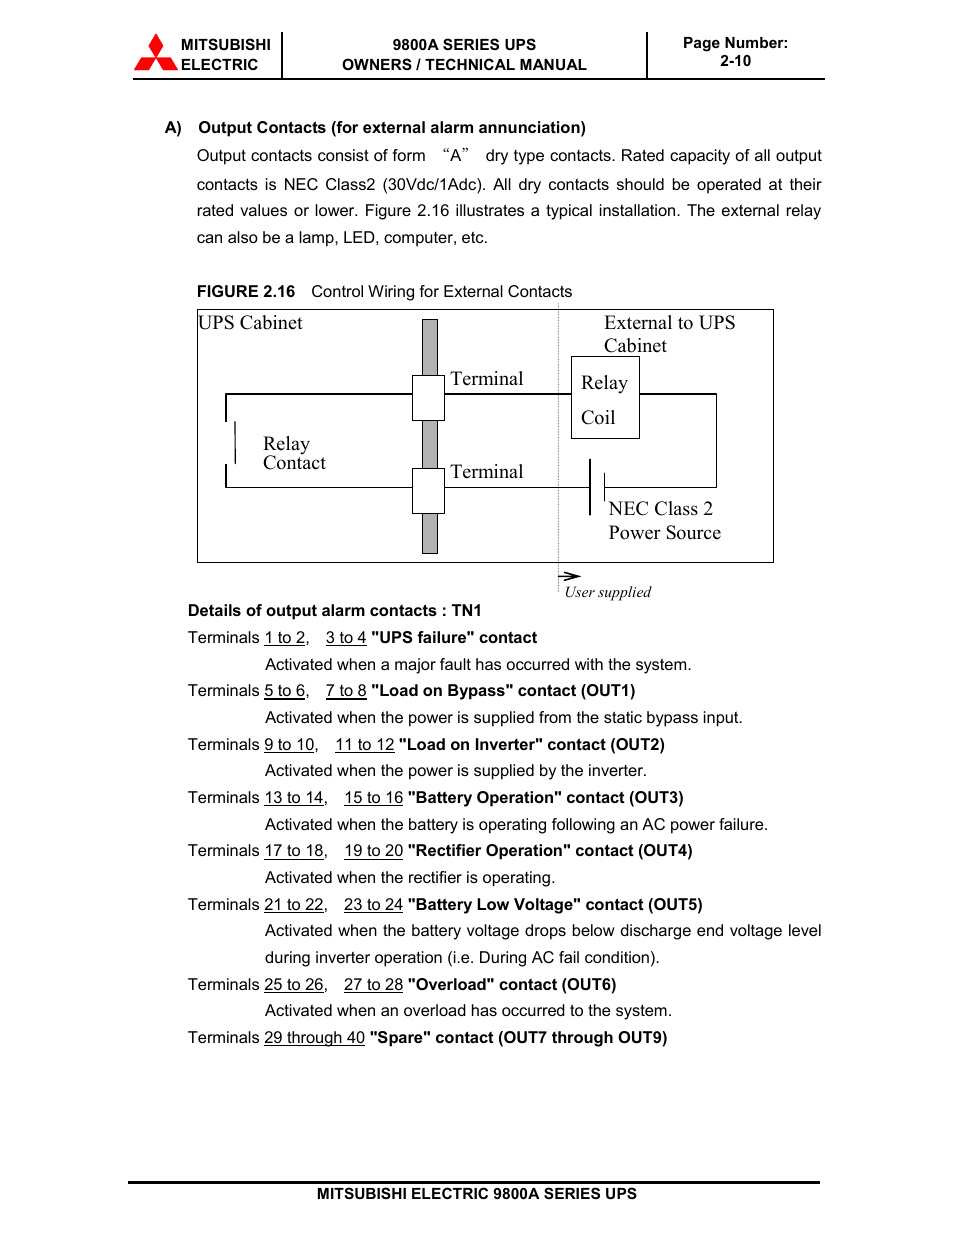 Terminal Ups Cabinet External To Mitsubishi Electric 9800a Alarm Contacts Wiring In Series Systems User Manual Page 31 70